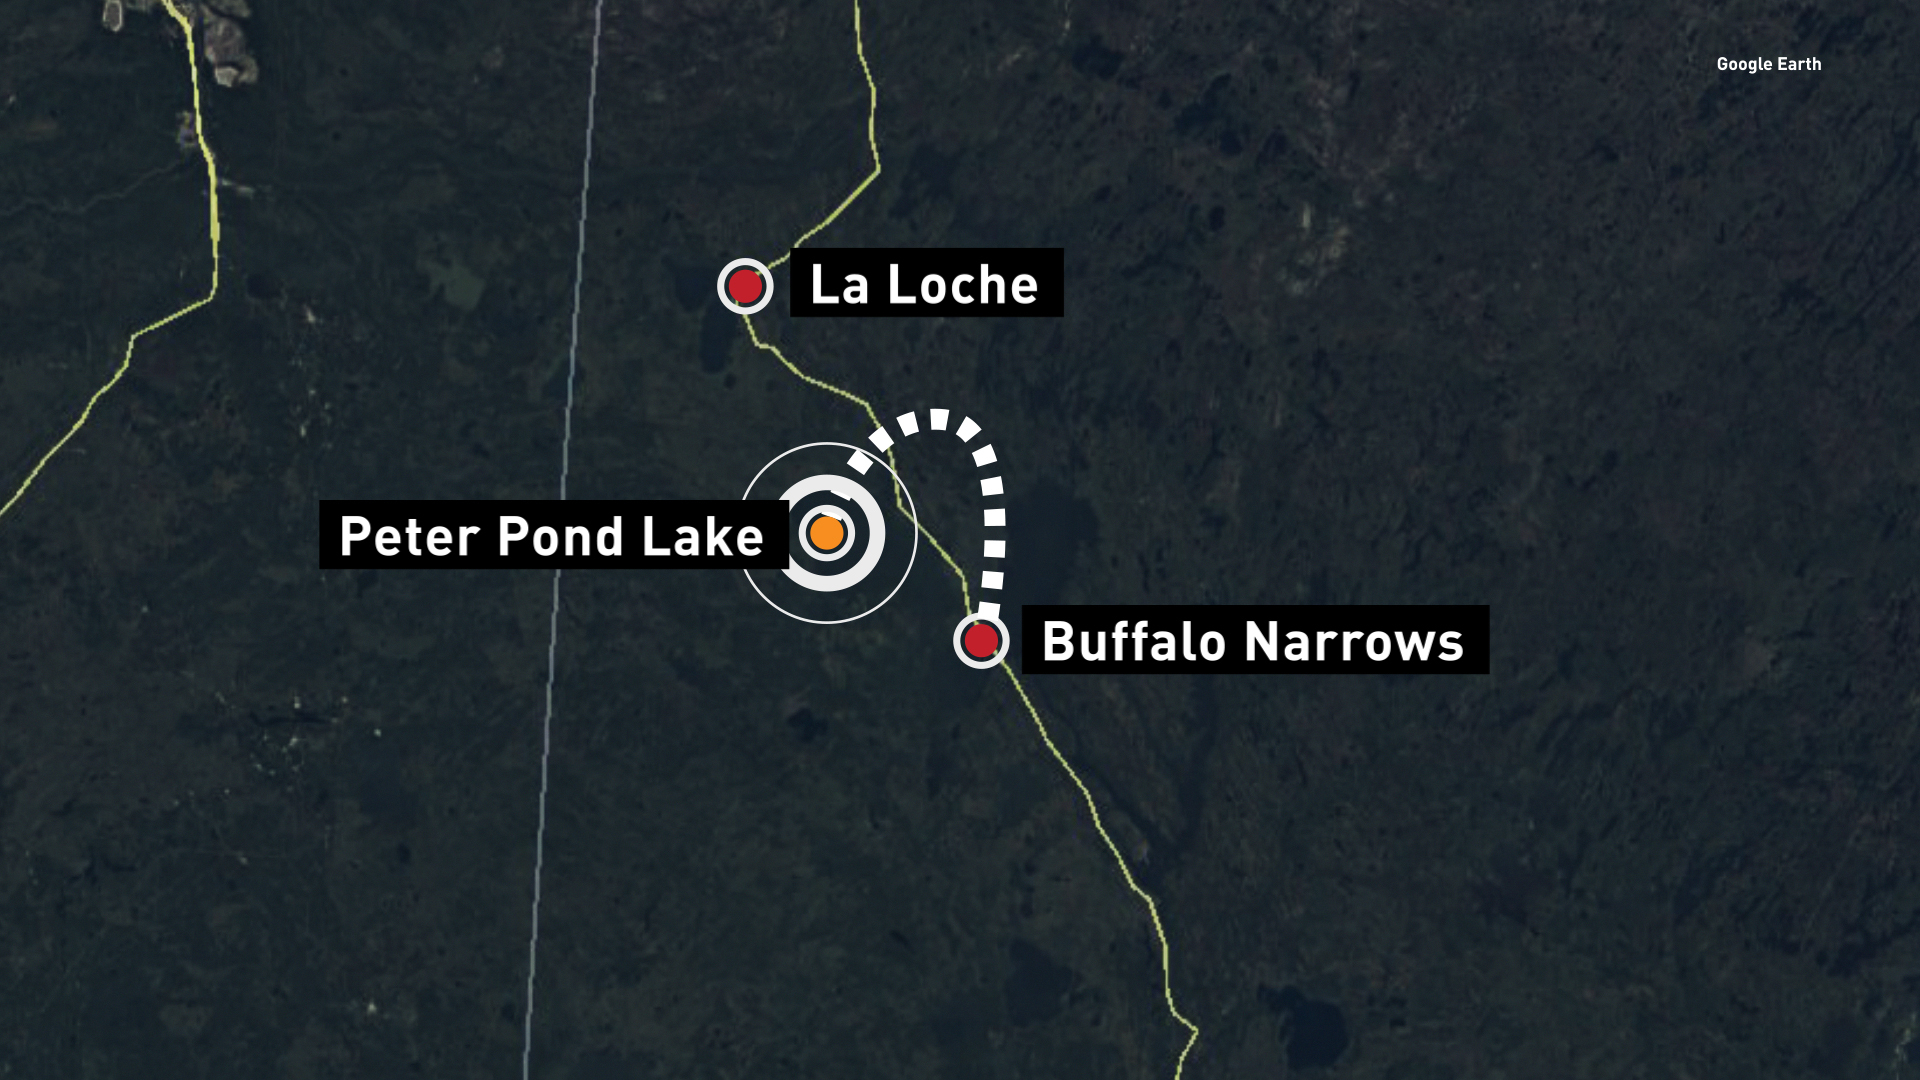 The plane's route was to fly from Buffalo Narrows to La Loche. Buffalo Narrows is approximately 500 kilometres north of Saskatoon.